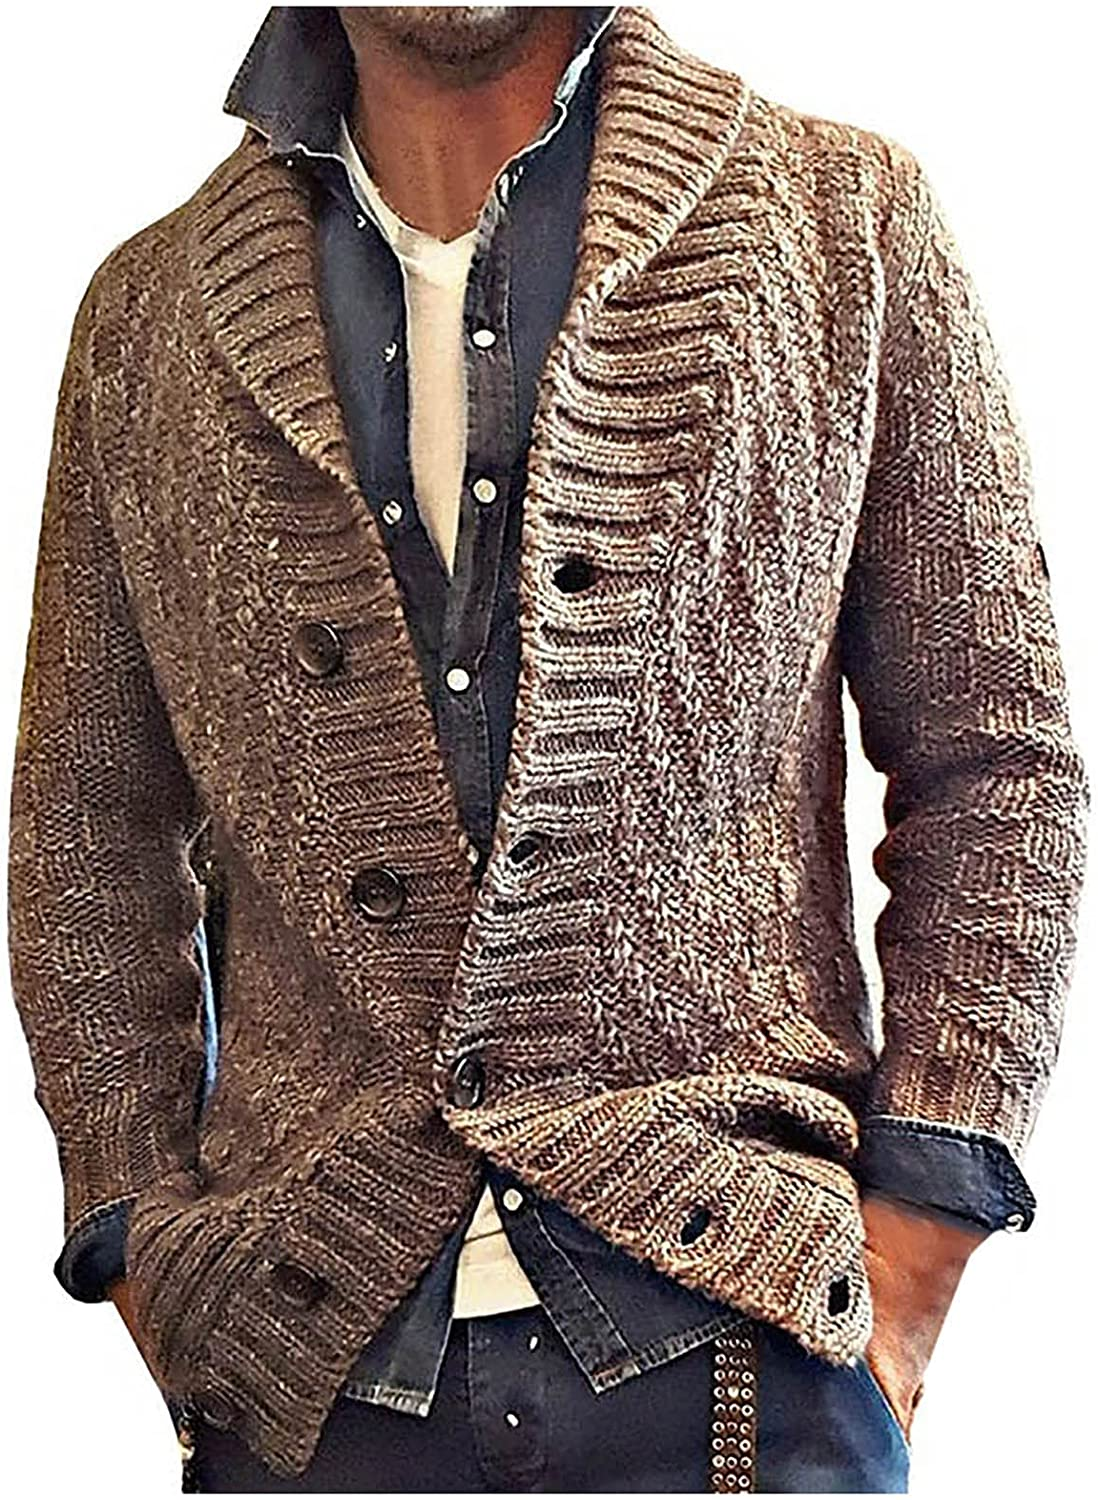 Huangse Men's Button Up Cardigan Sweater Slim Fit Wool Blend Ribbed Cuff Plaid Twill Knitted Shawl Collar Sweater Jacket